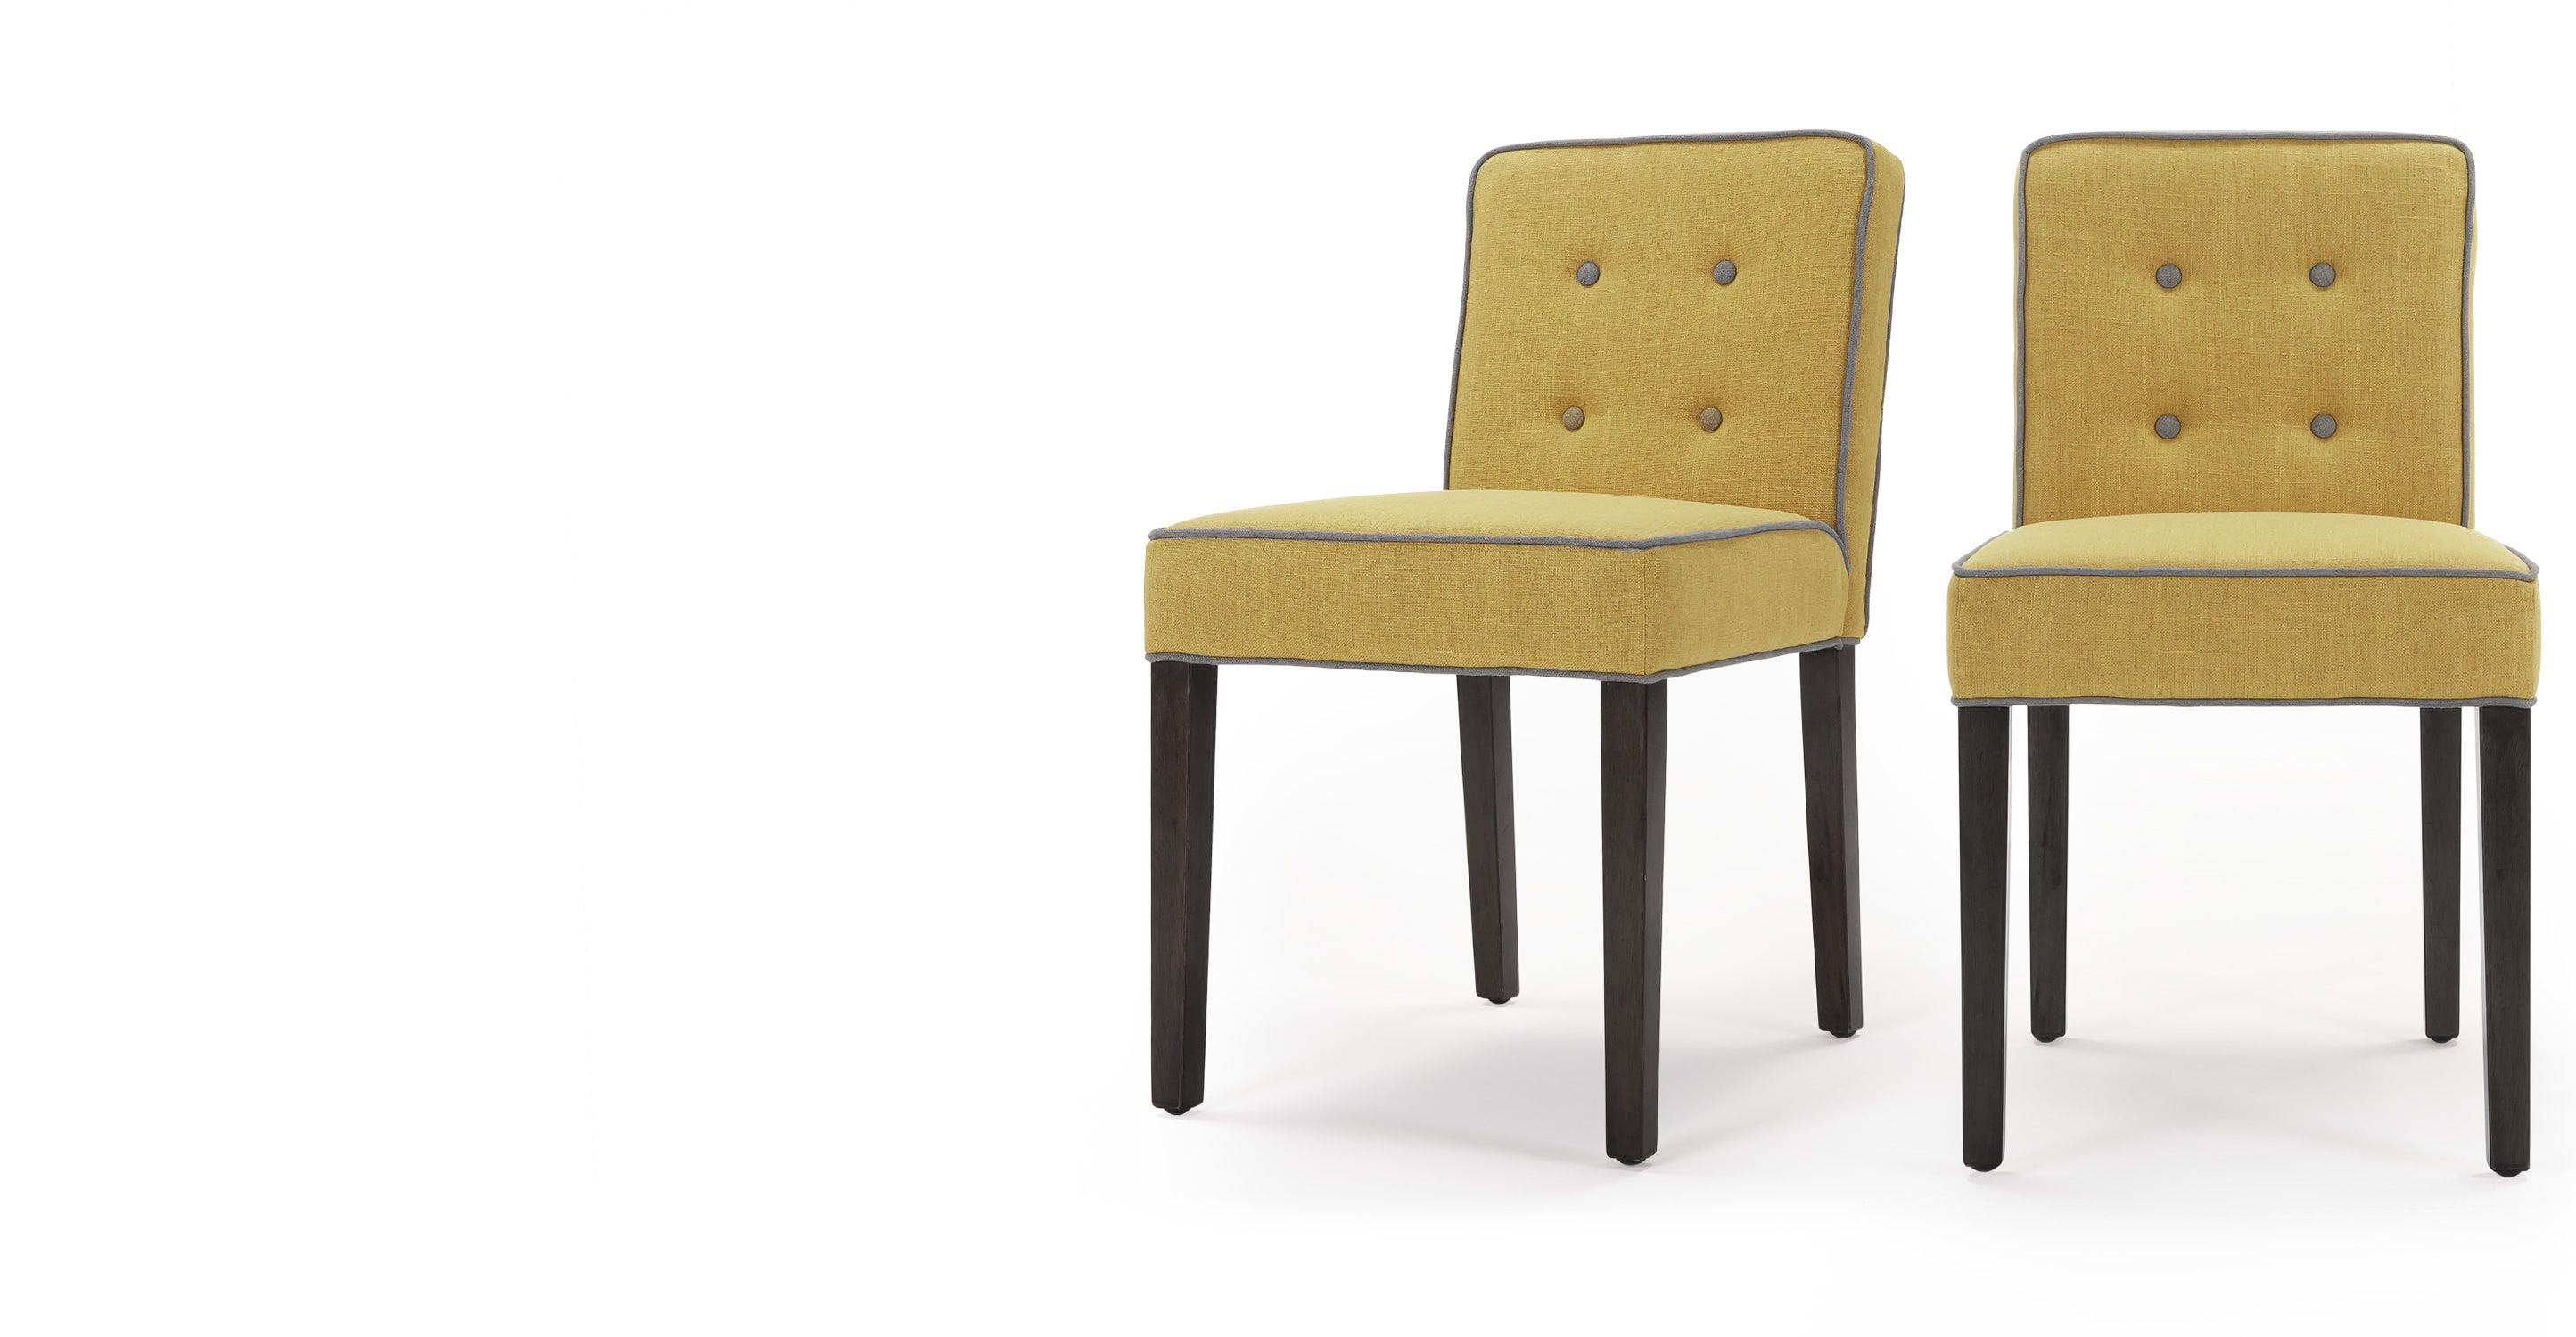 Set of 2 Hoxton Dining Chairs Pistachio Green and Graphite Grey